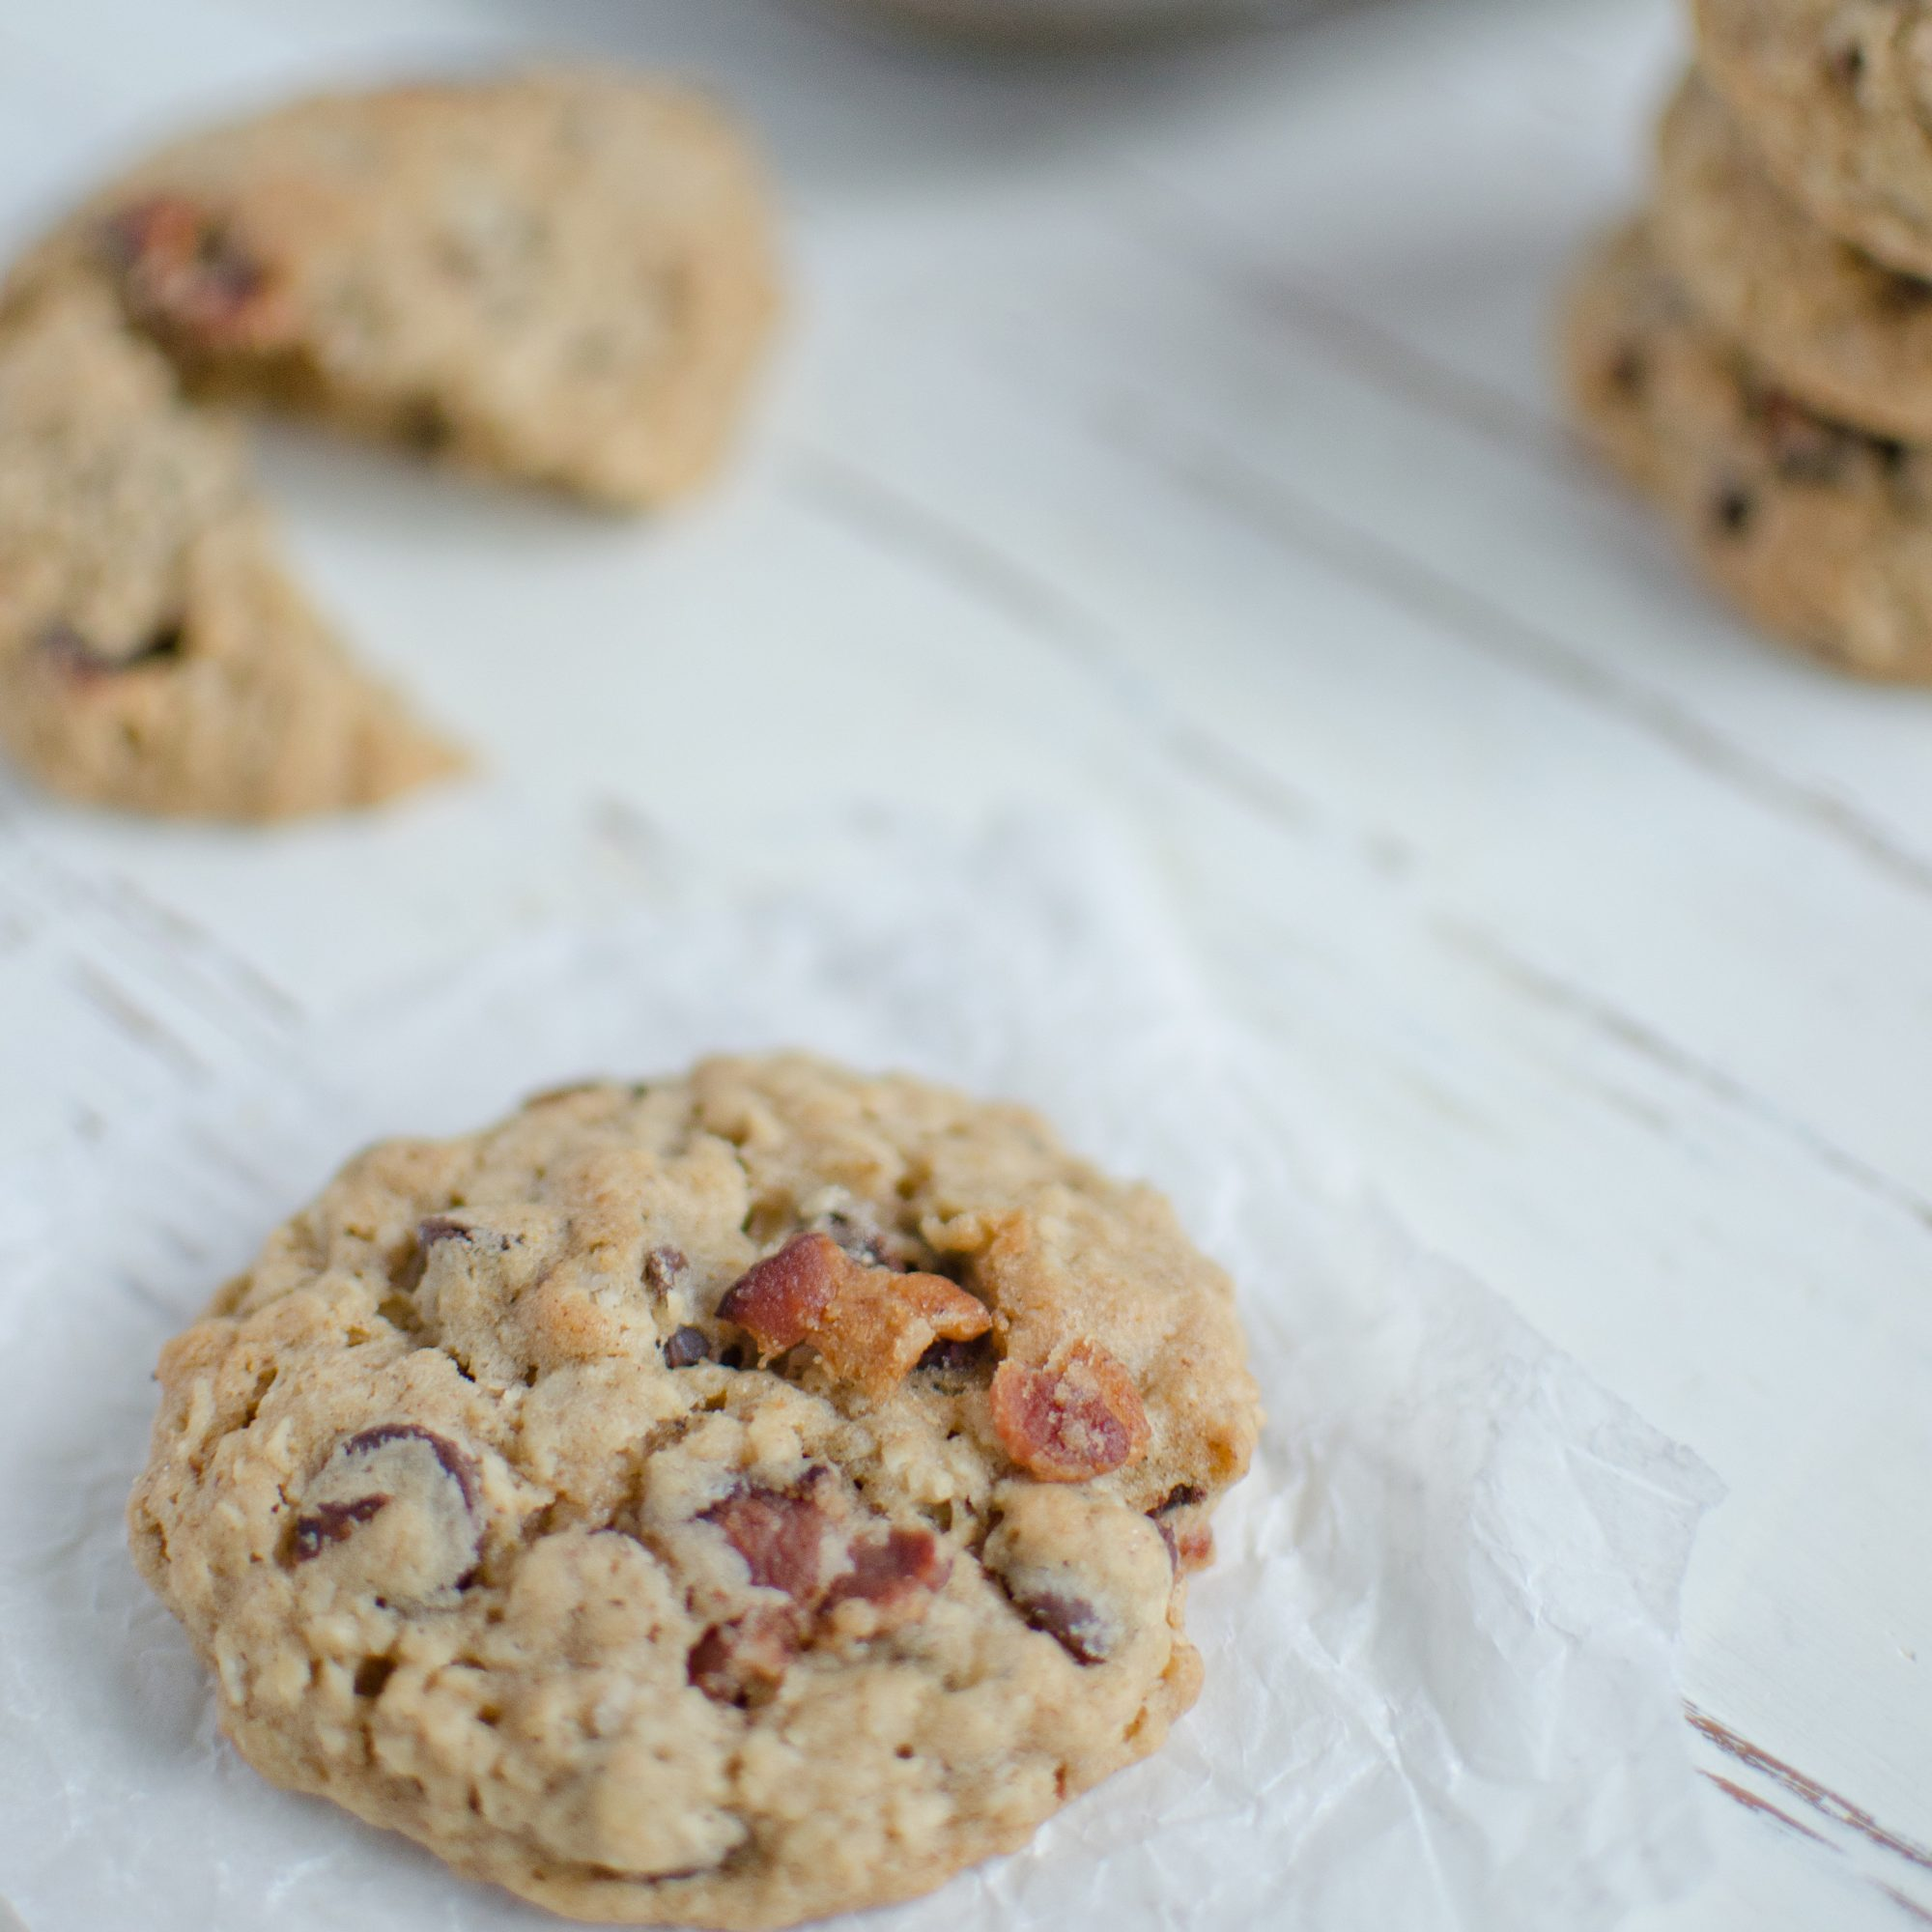 Bacon-Chocolate-Chip-Oatmeal Cookies